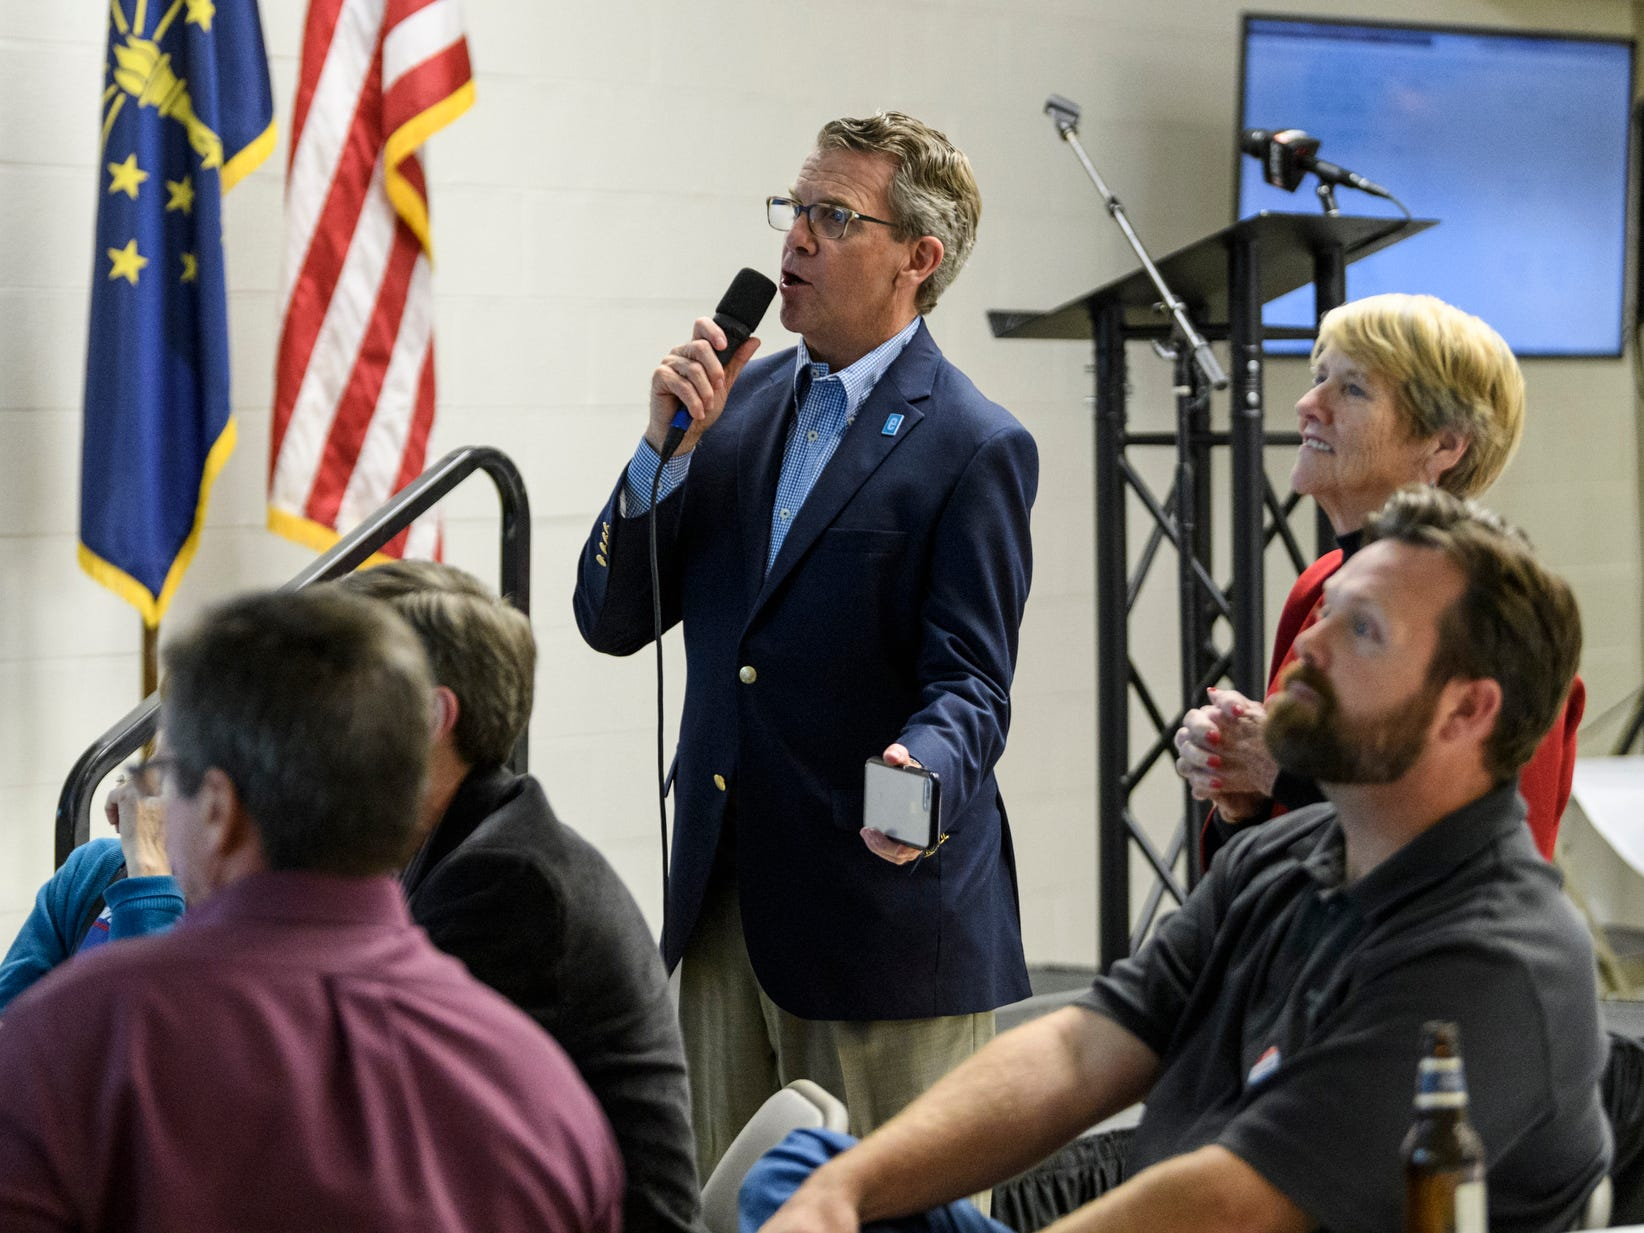 Mayor Lloyd Winnecke, top center, reads out results during the Republican watch party held at C K Newsome Community Center in Evansville, Ind., Tuesday, Nov. 6, 2018.